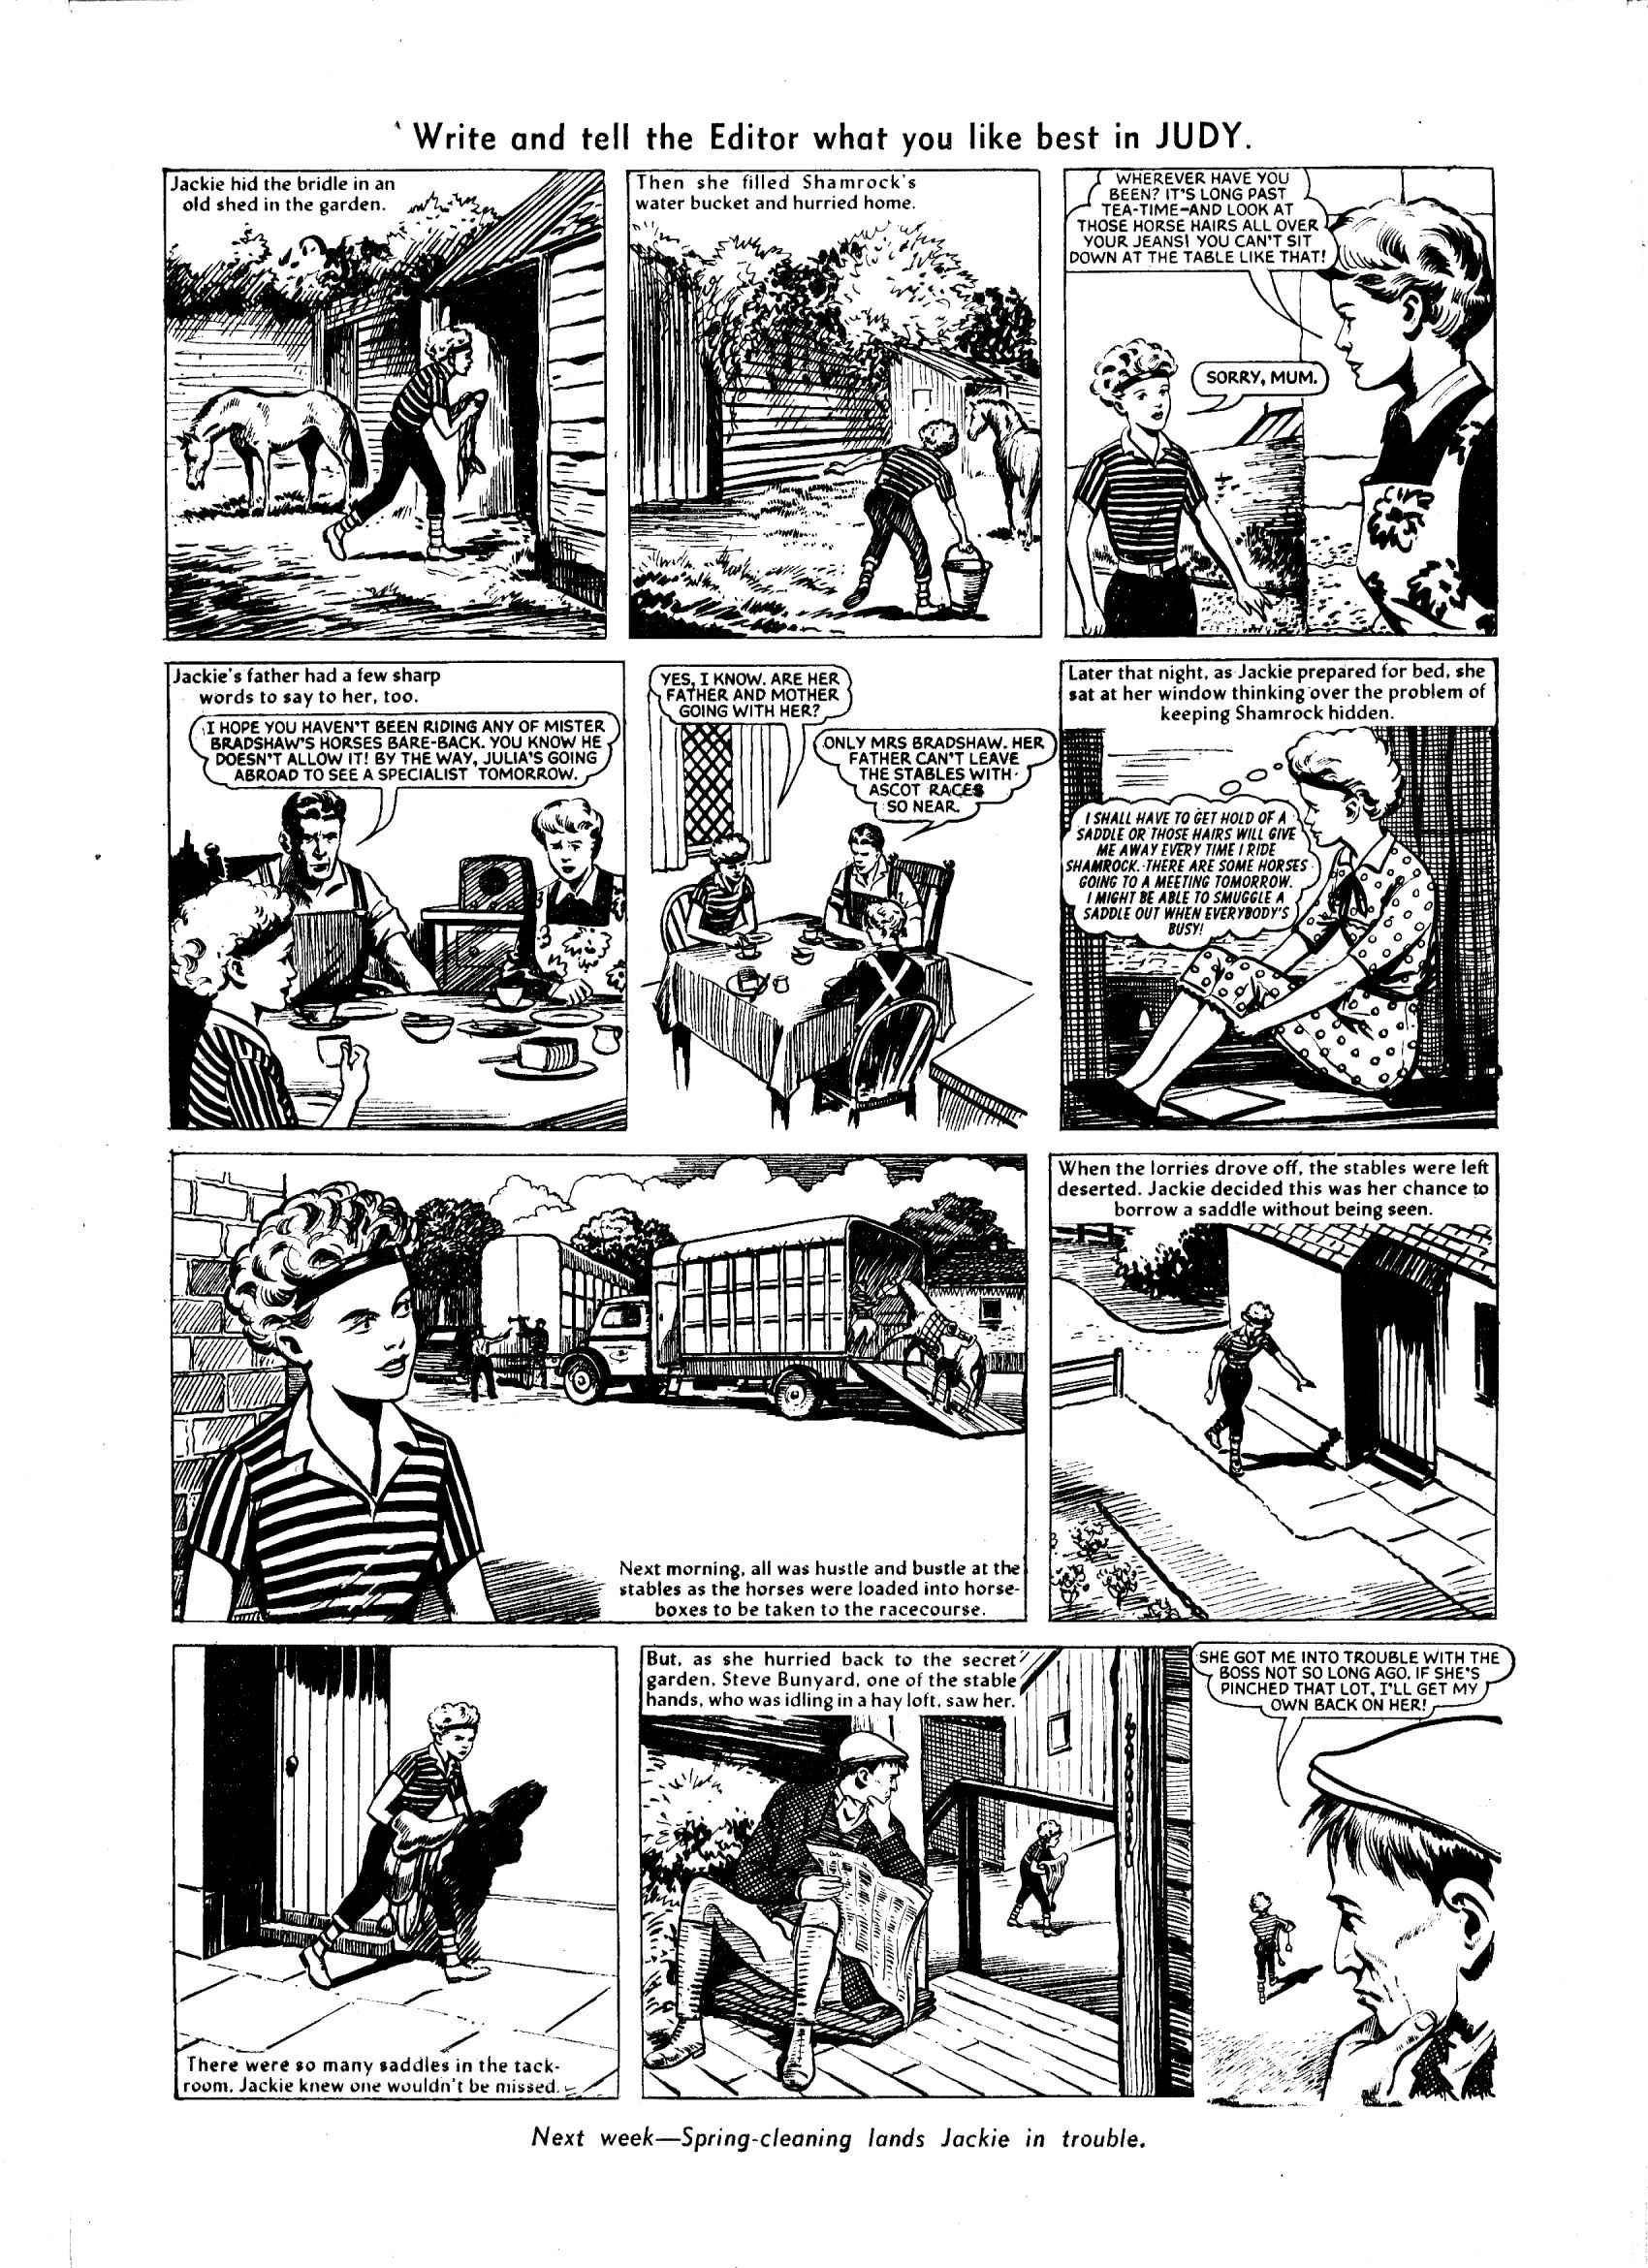 Read online Judy comic -  Issue #47 - 9